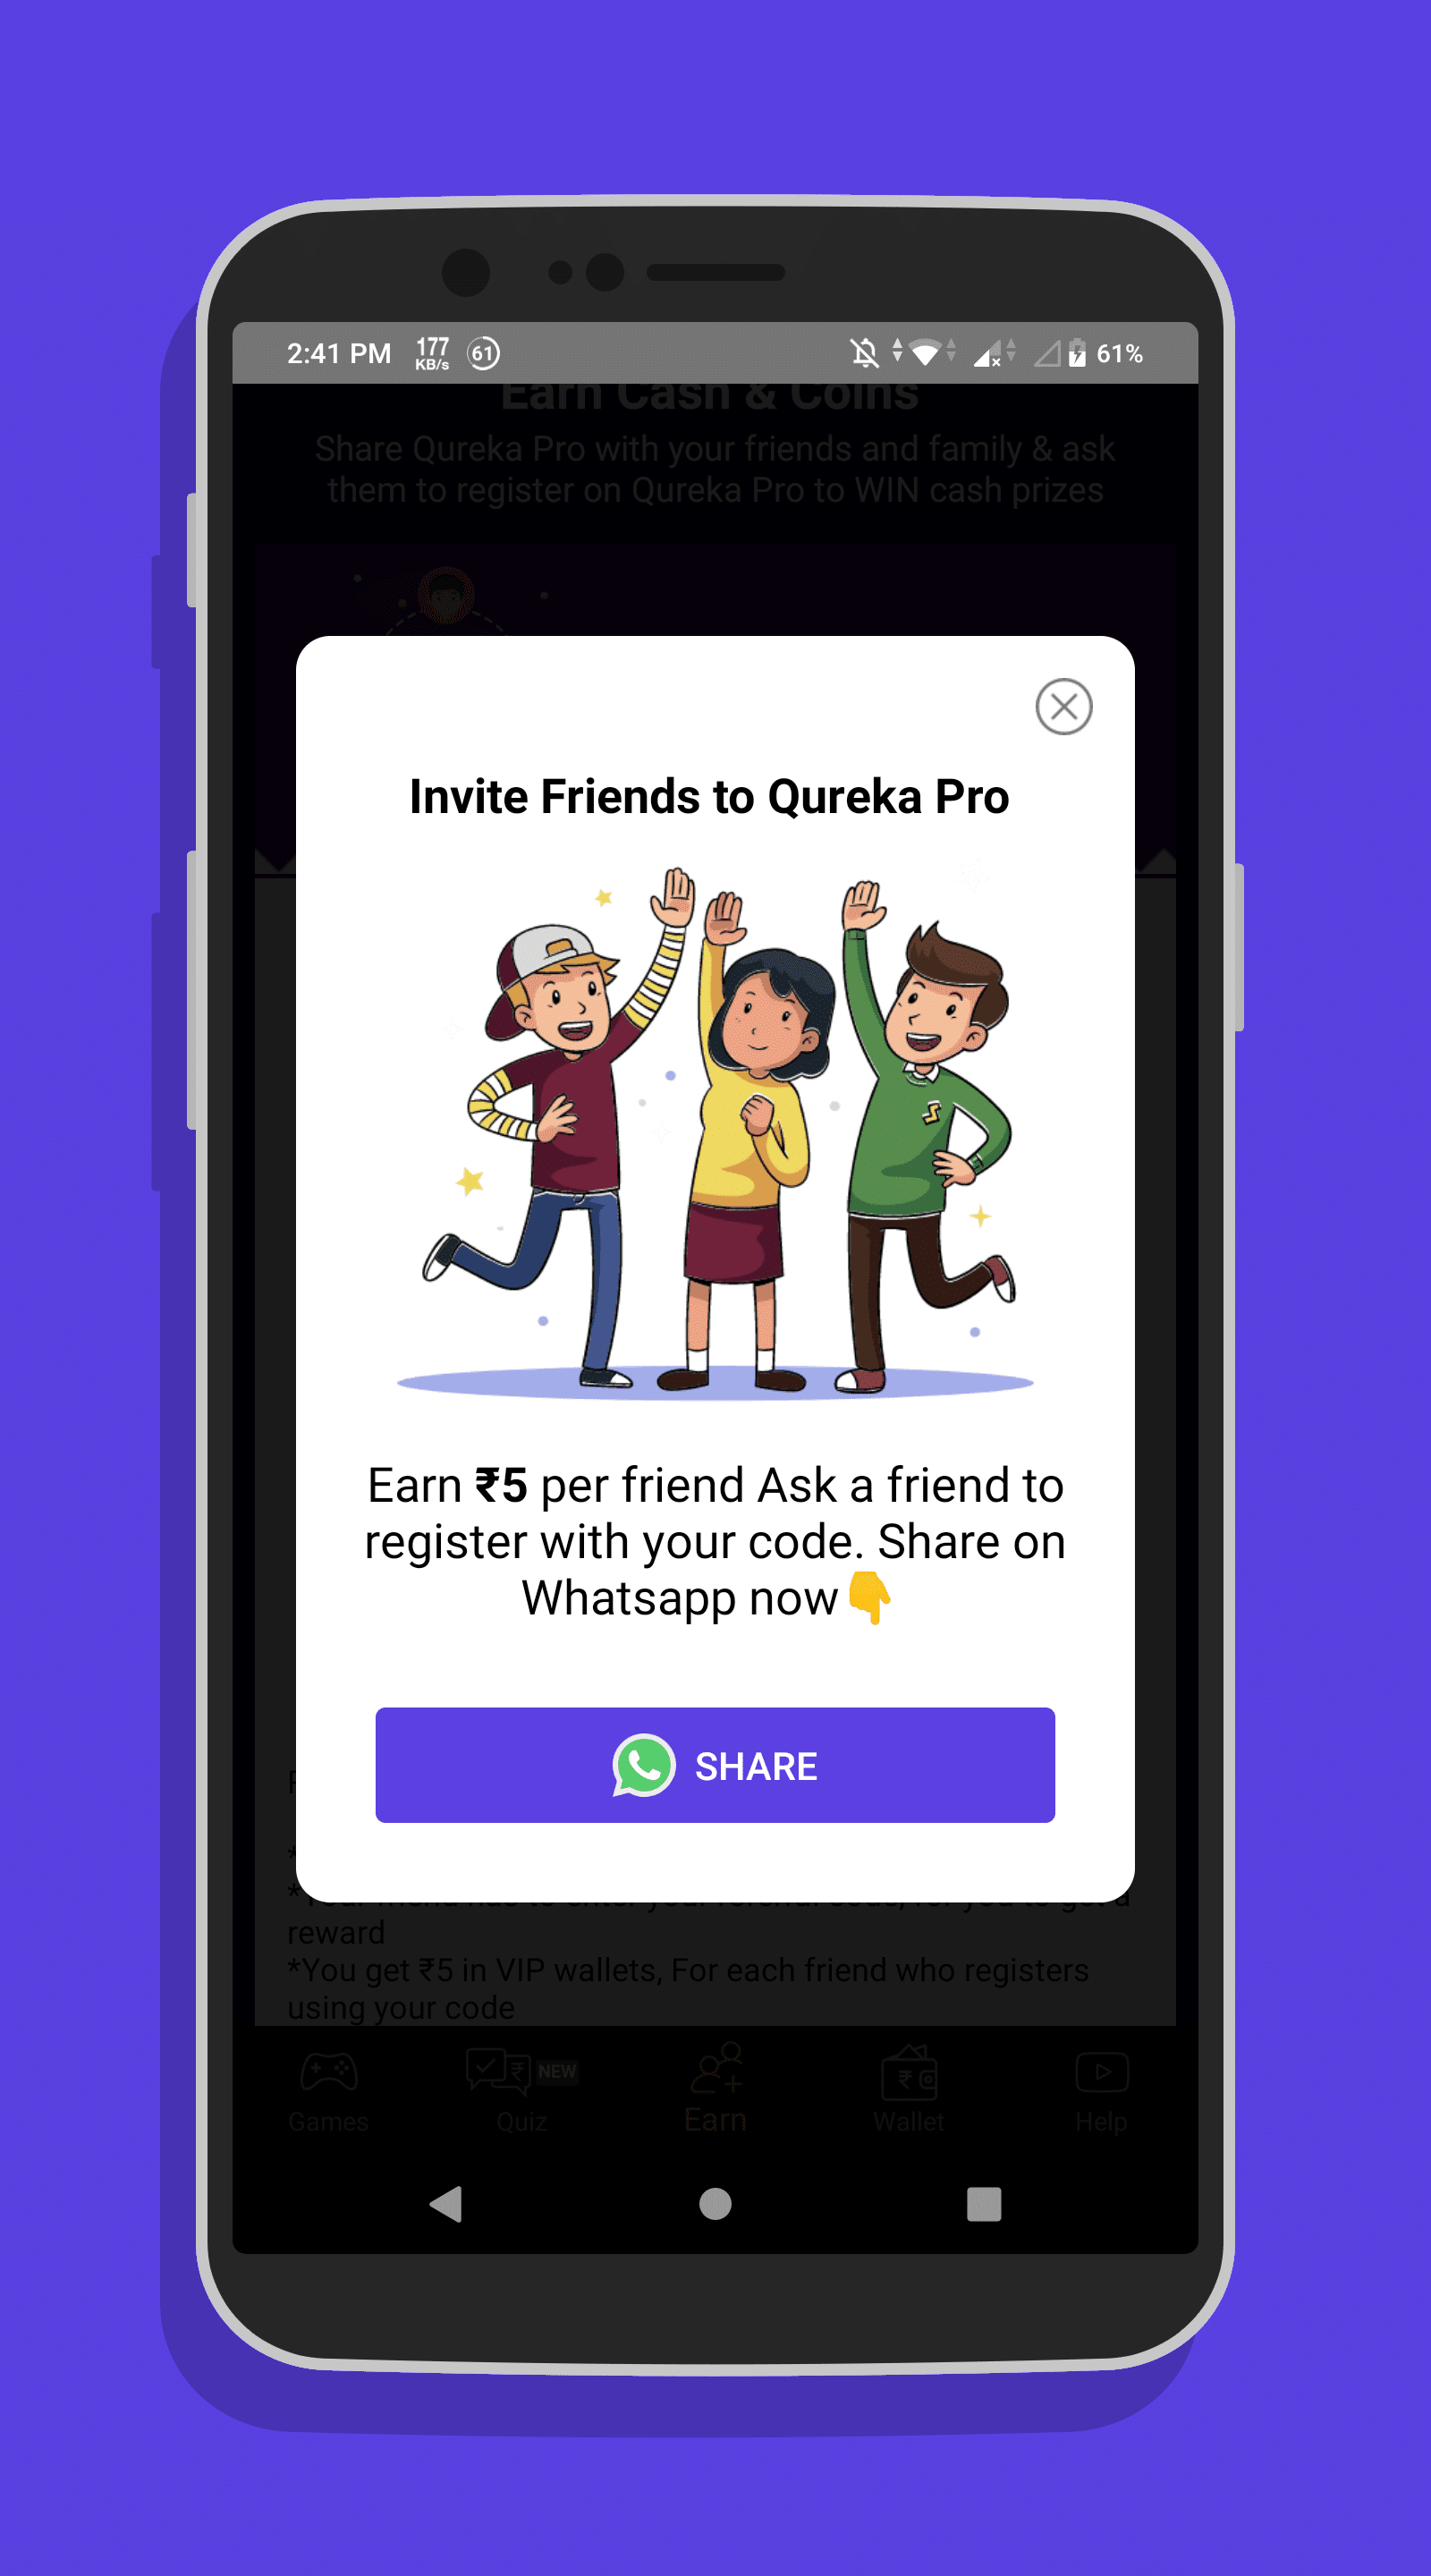 Qureka referral code